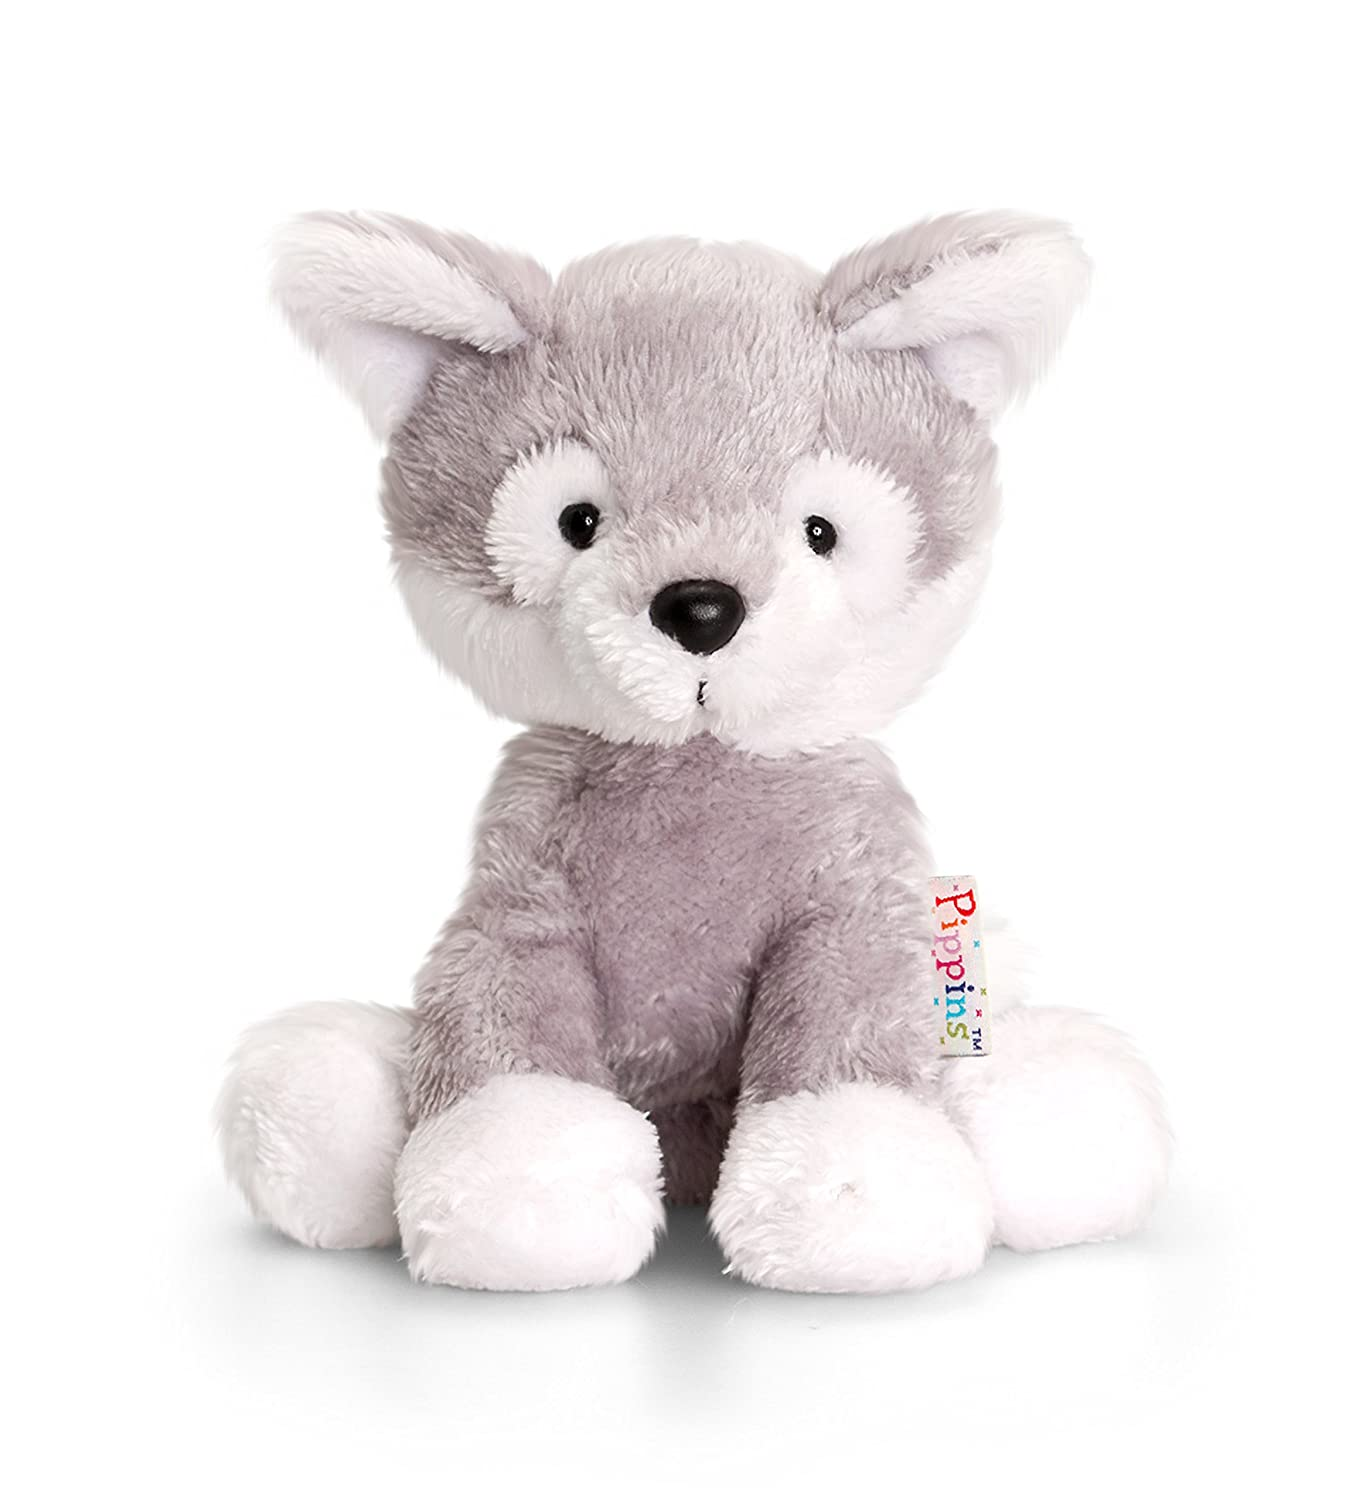 9bd82815bd1c2 Keel Toys 14 cm Pippins Husky  Amazon.co.uk  Toys   Games